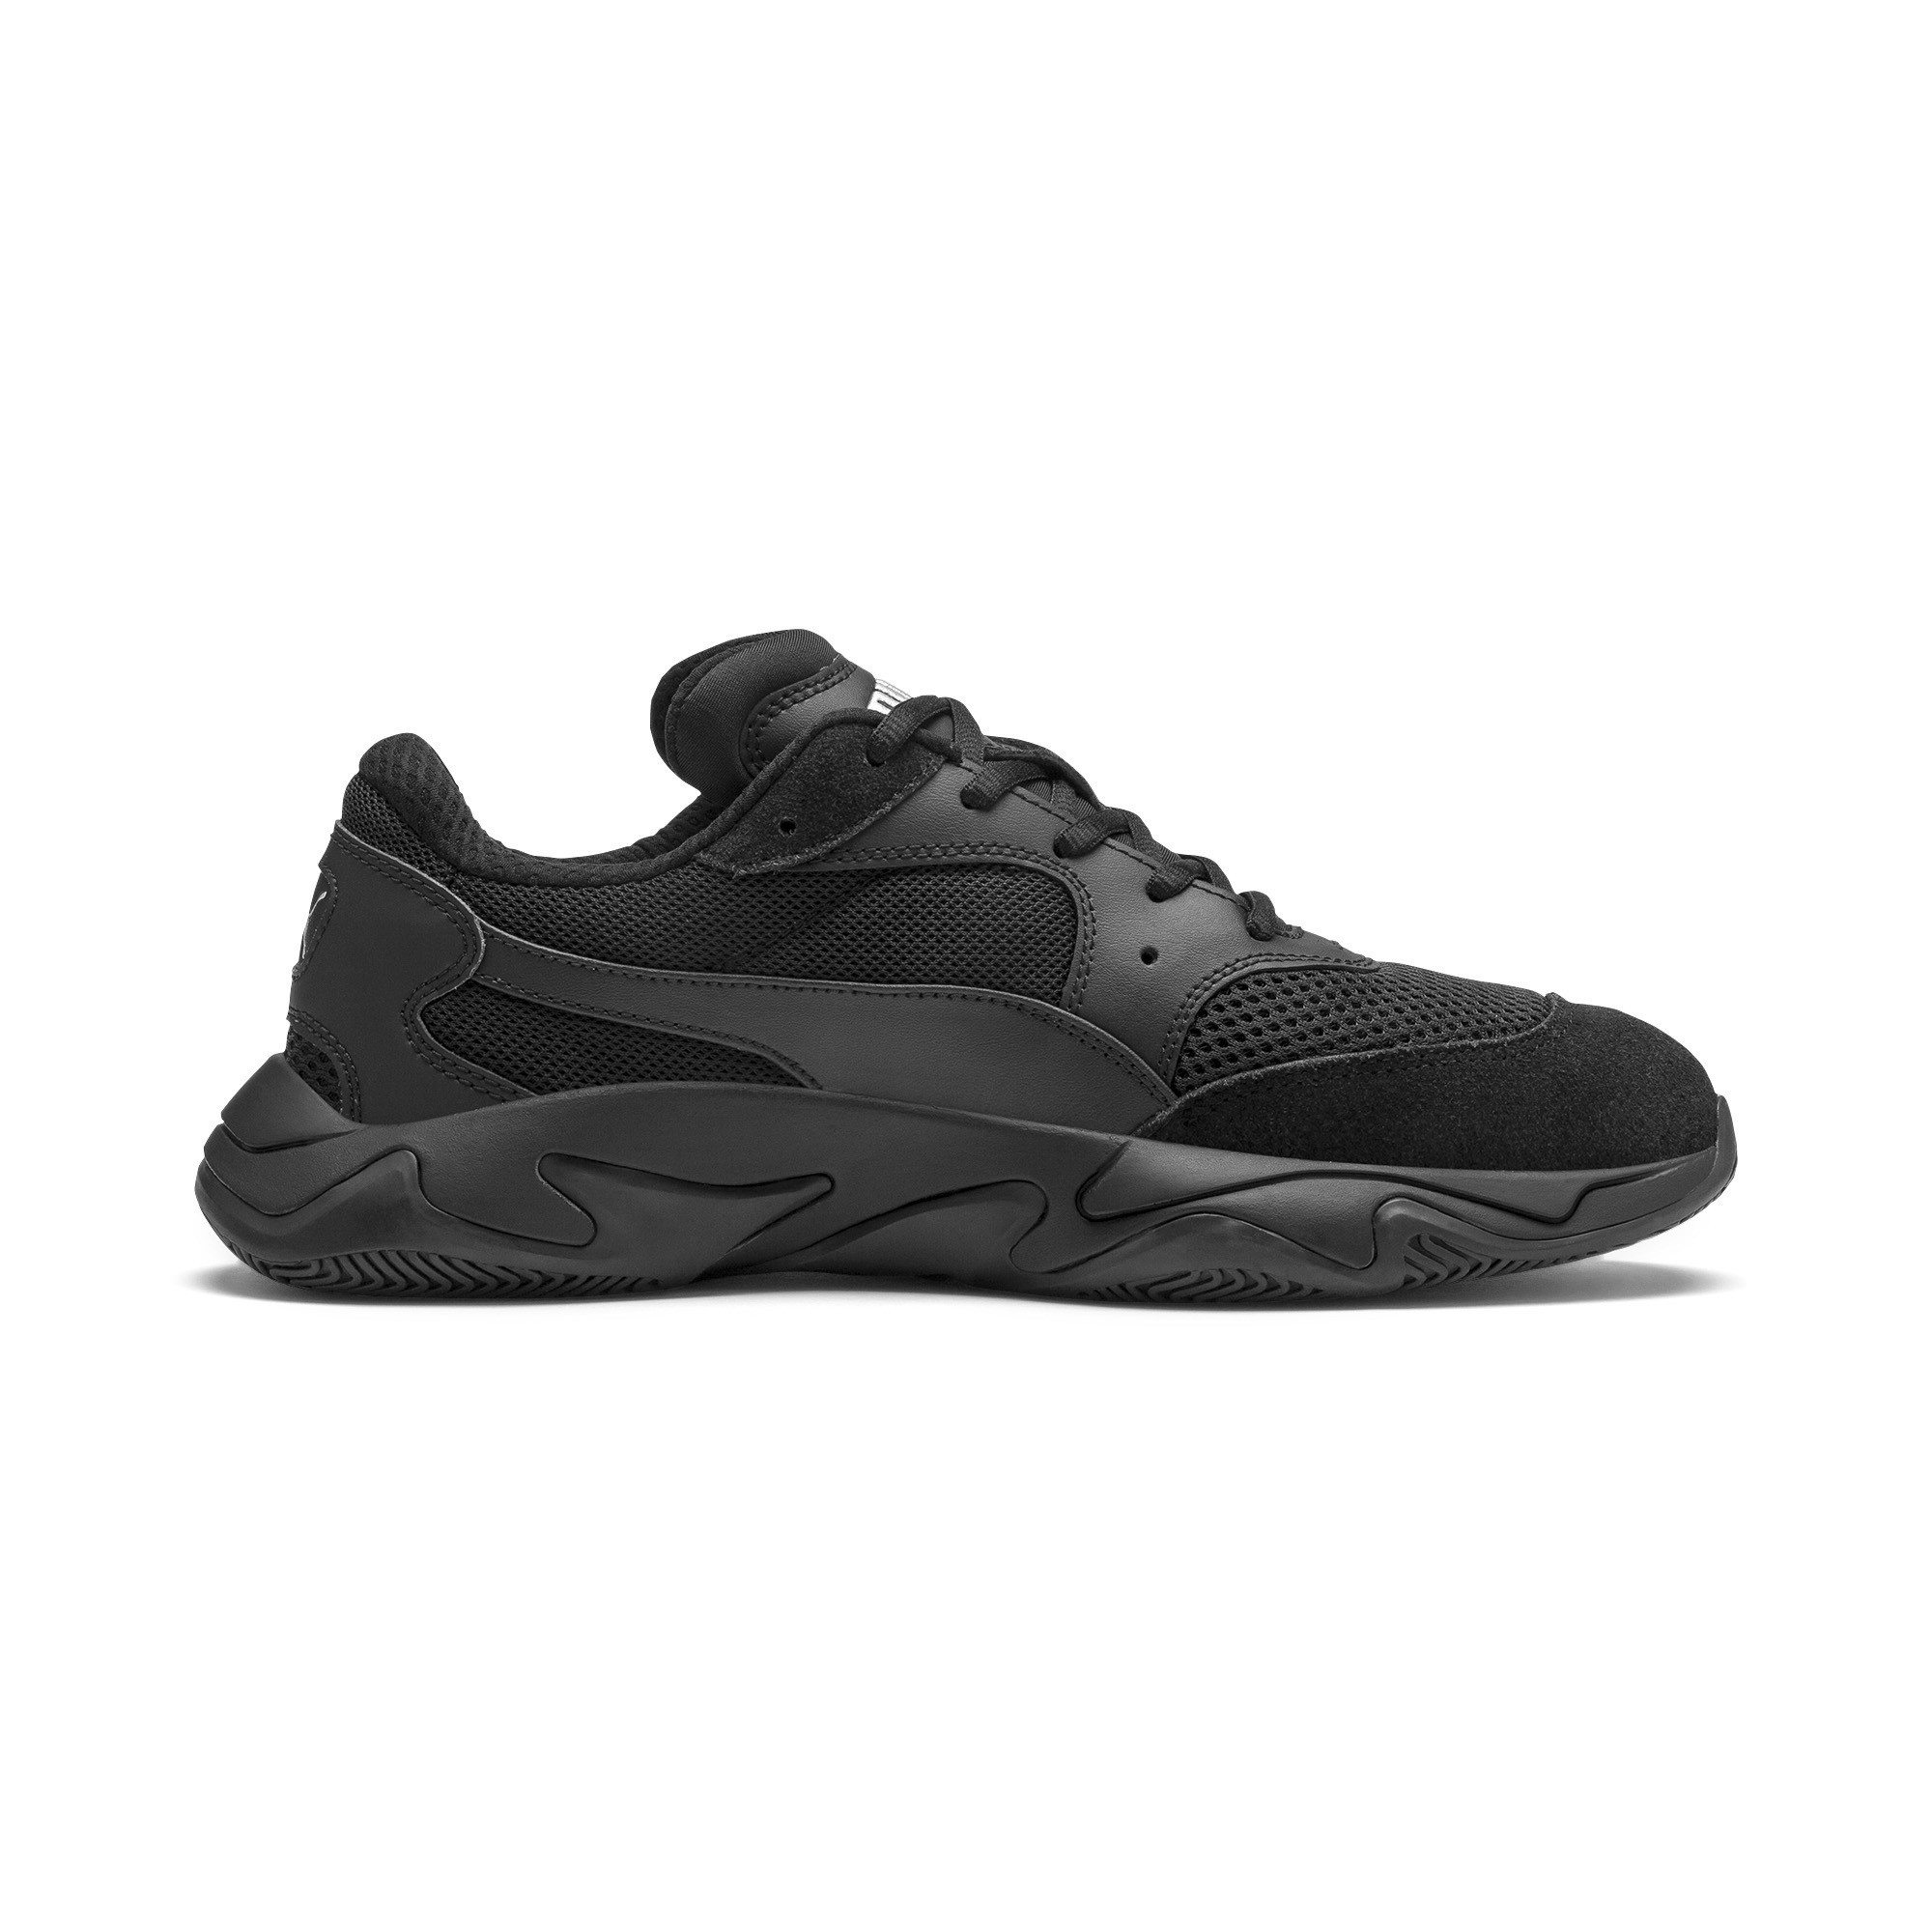 PUMA-Storm-Origin-Sneakers-Unisex-Shoe-Evolution thumbnail 7